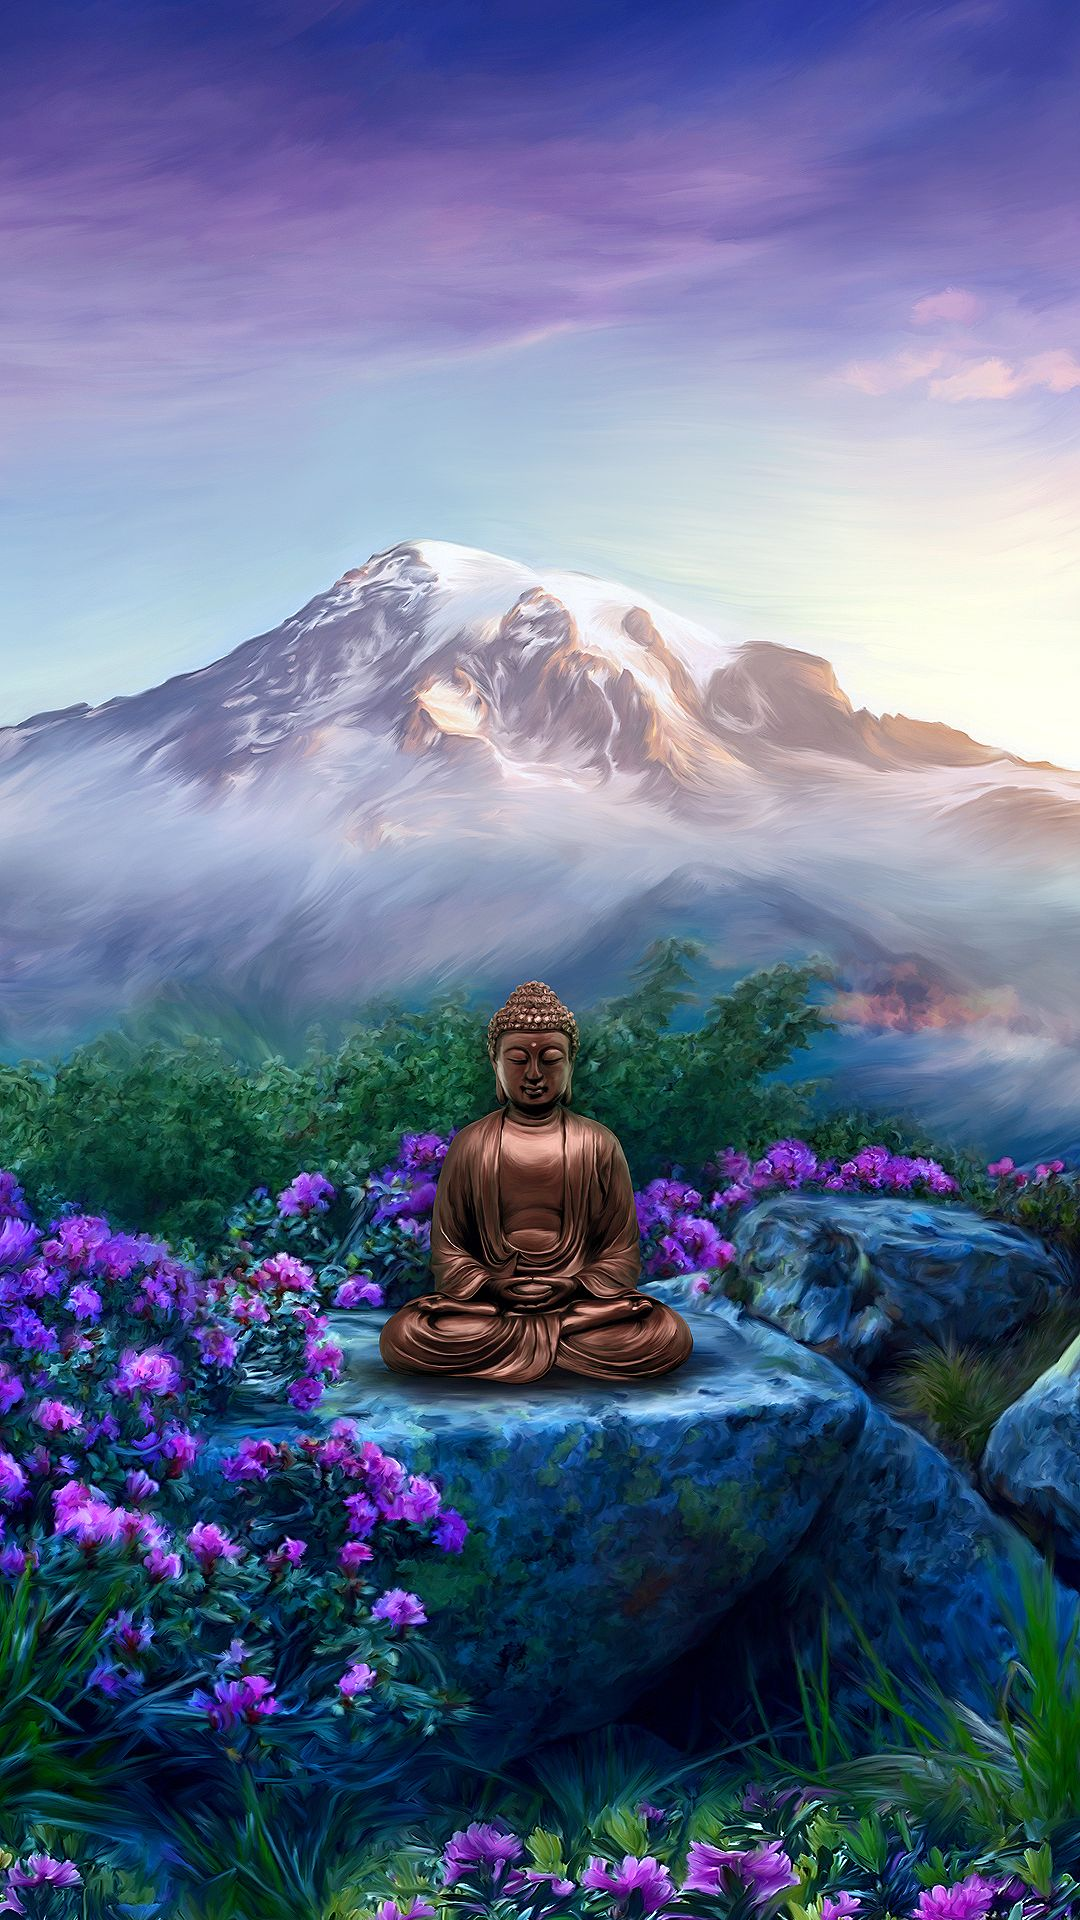 Buddha Wallpaper For Mobile Devices Artwork By Goodvibesgallery Com Lord Buddha Wallpapers Buddha Wallpaper Iphone Buddhism Wallpaper